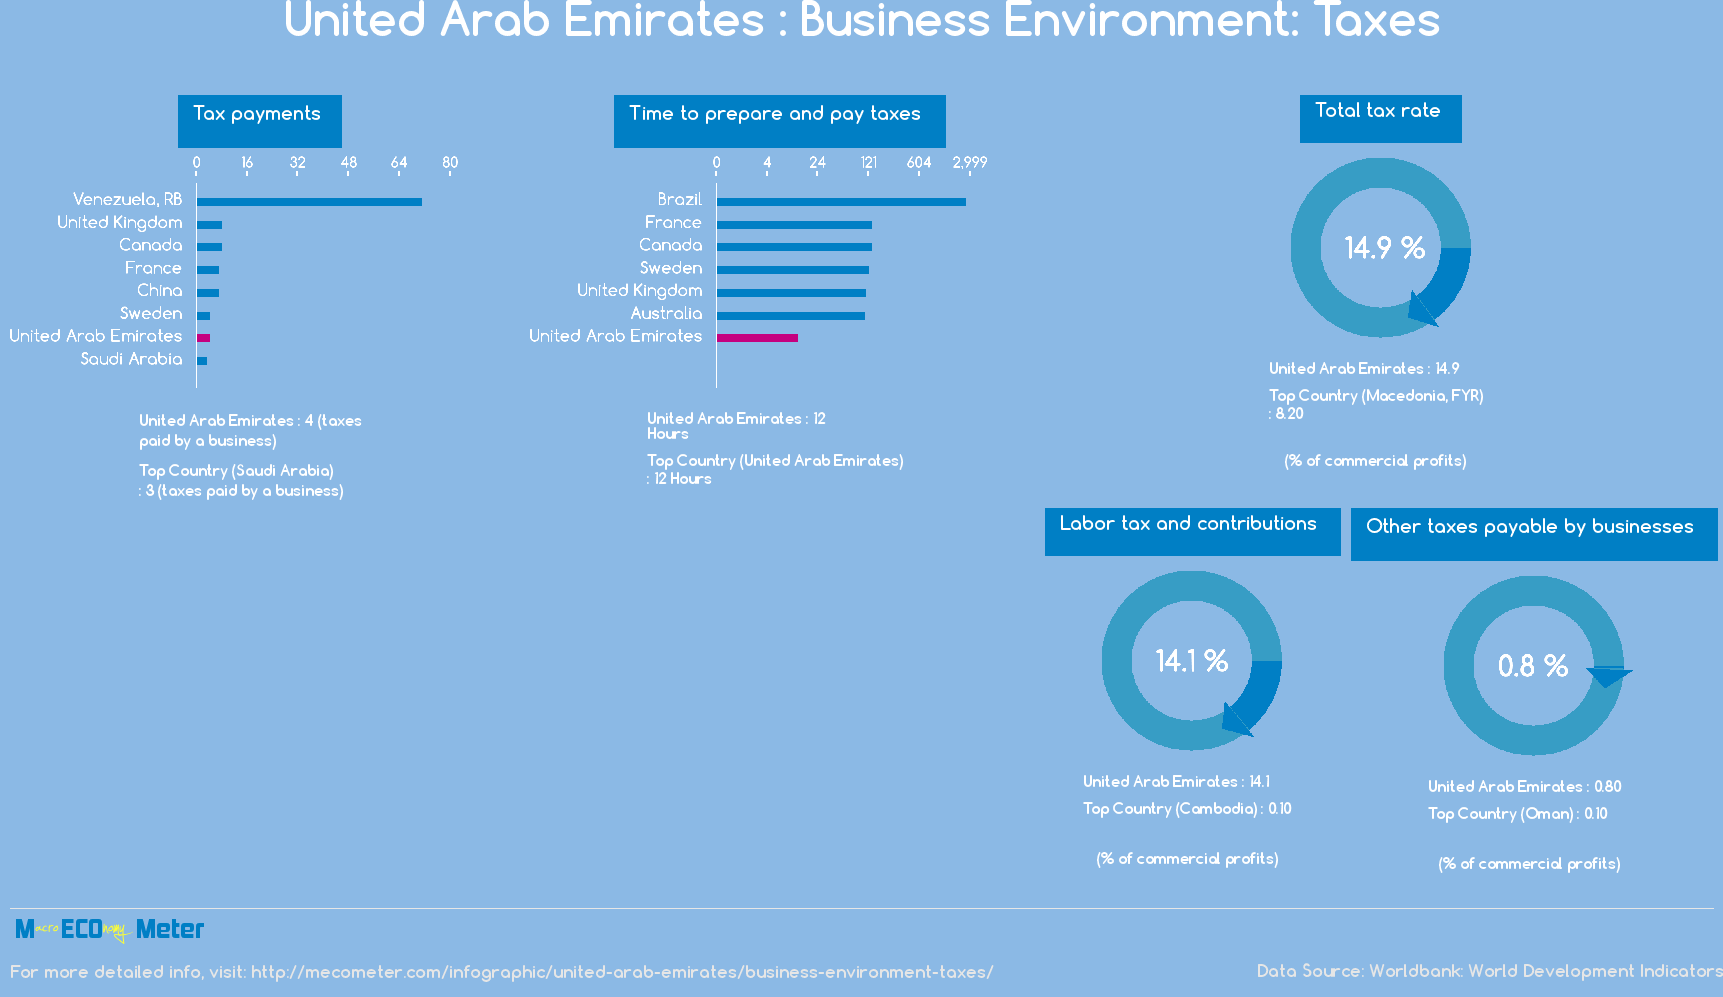 United Arab Emirates : Business Environment: Taxes